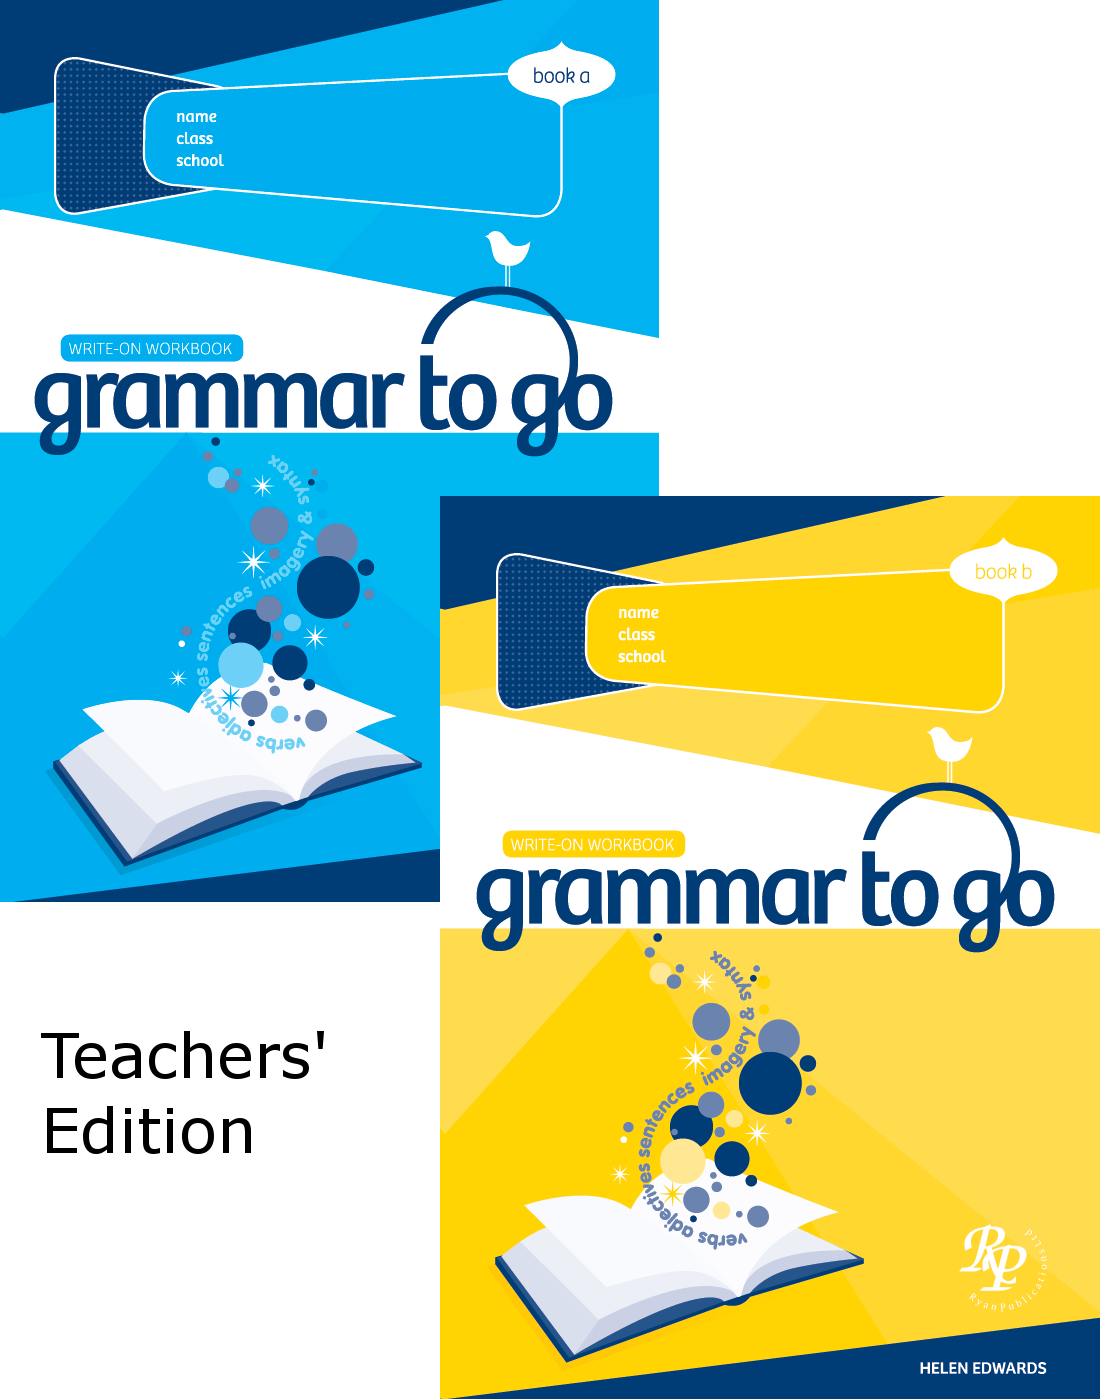 grammar book for teachers A new mobile app for teachers and students to learn english grammar the english language plays a very important role in the national curriculum (nc) great demands are made of teachers at secondary schools to teach complex linguistic and grammatical concepts, as laid down in the nc table 1 below.